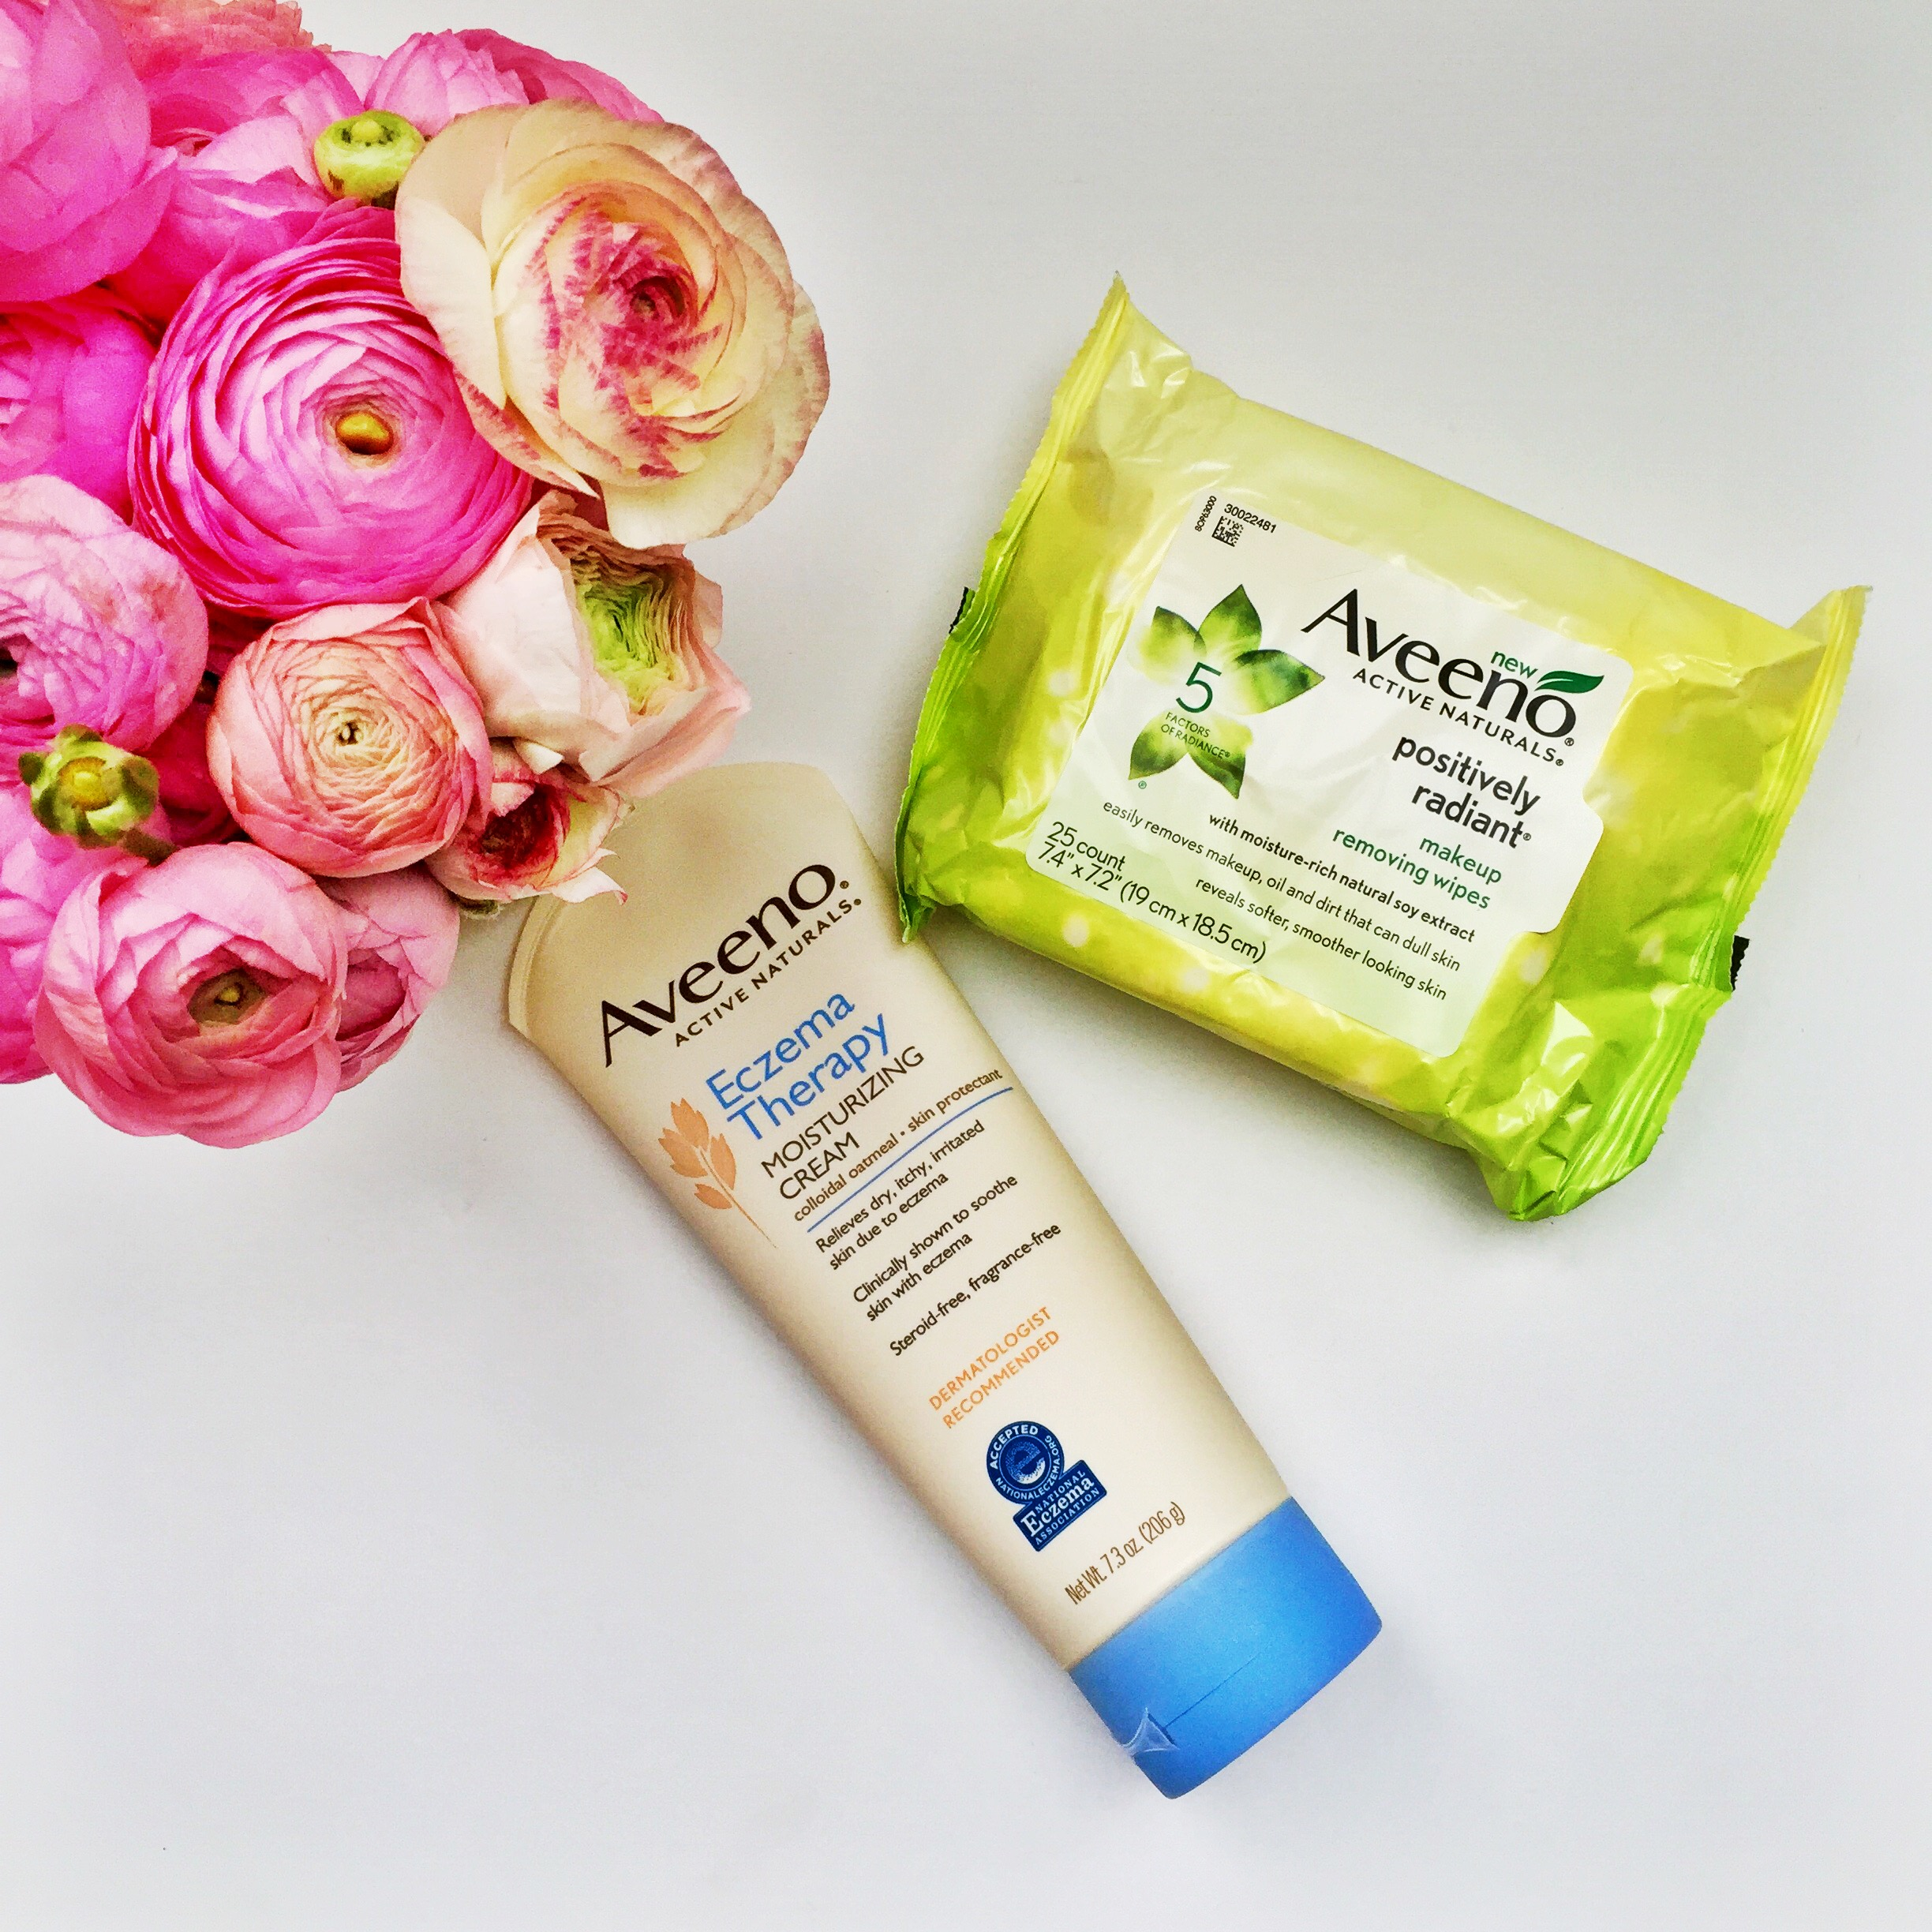 Aveeno Active Naturals For Transitional Weather